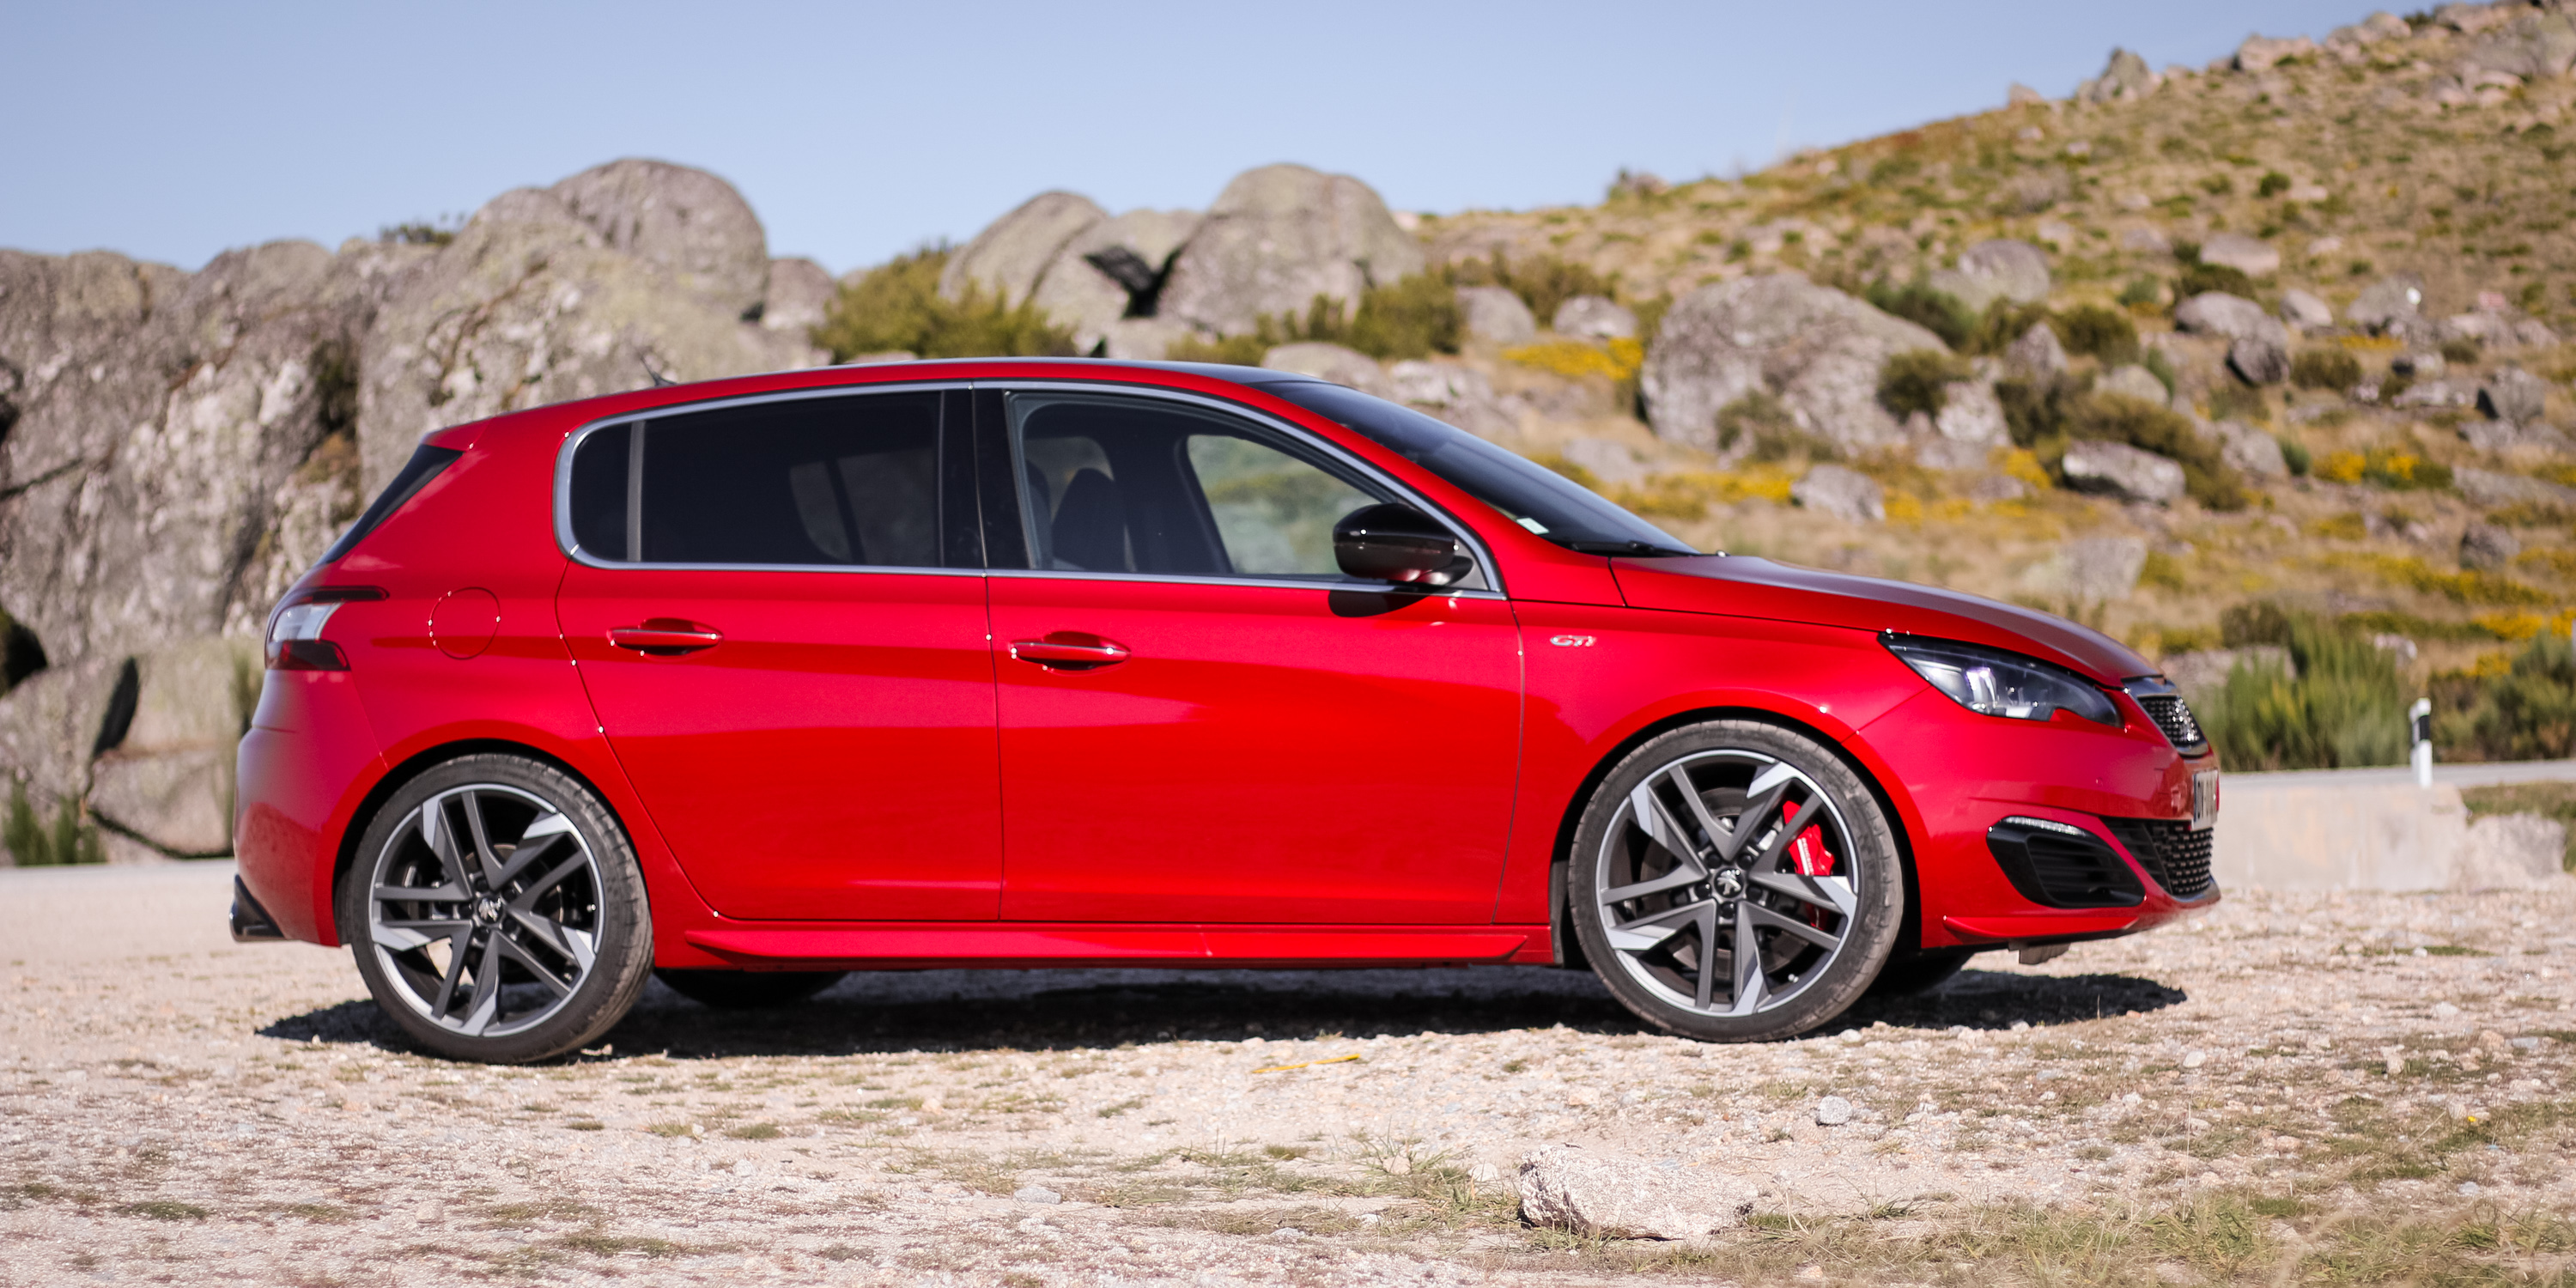 2016 Peugeot 308 Gti Side Exterior Preview (Photo 11 of 15)